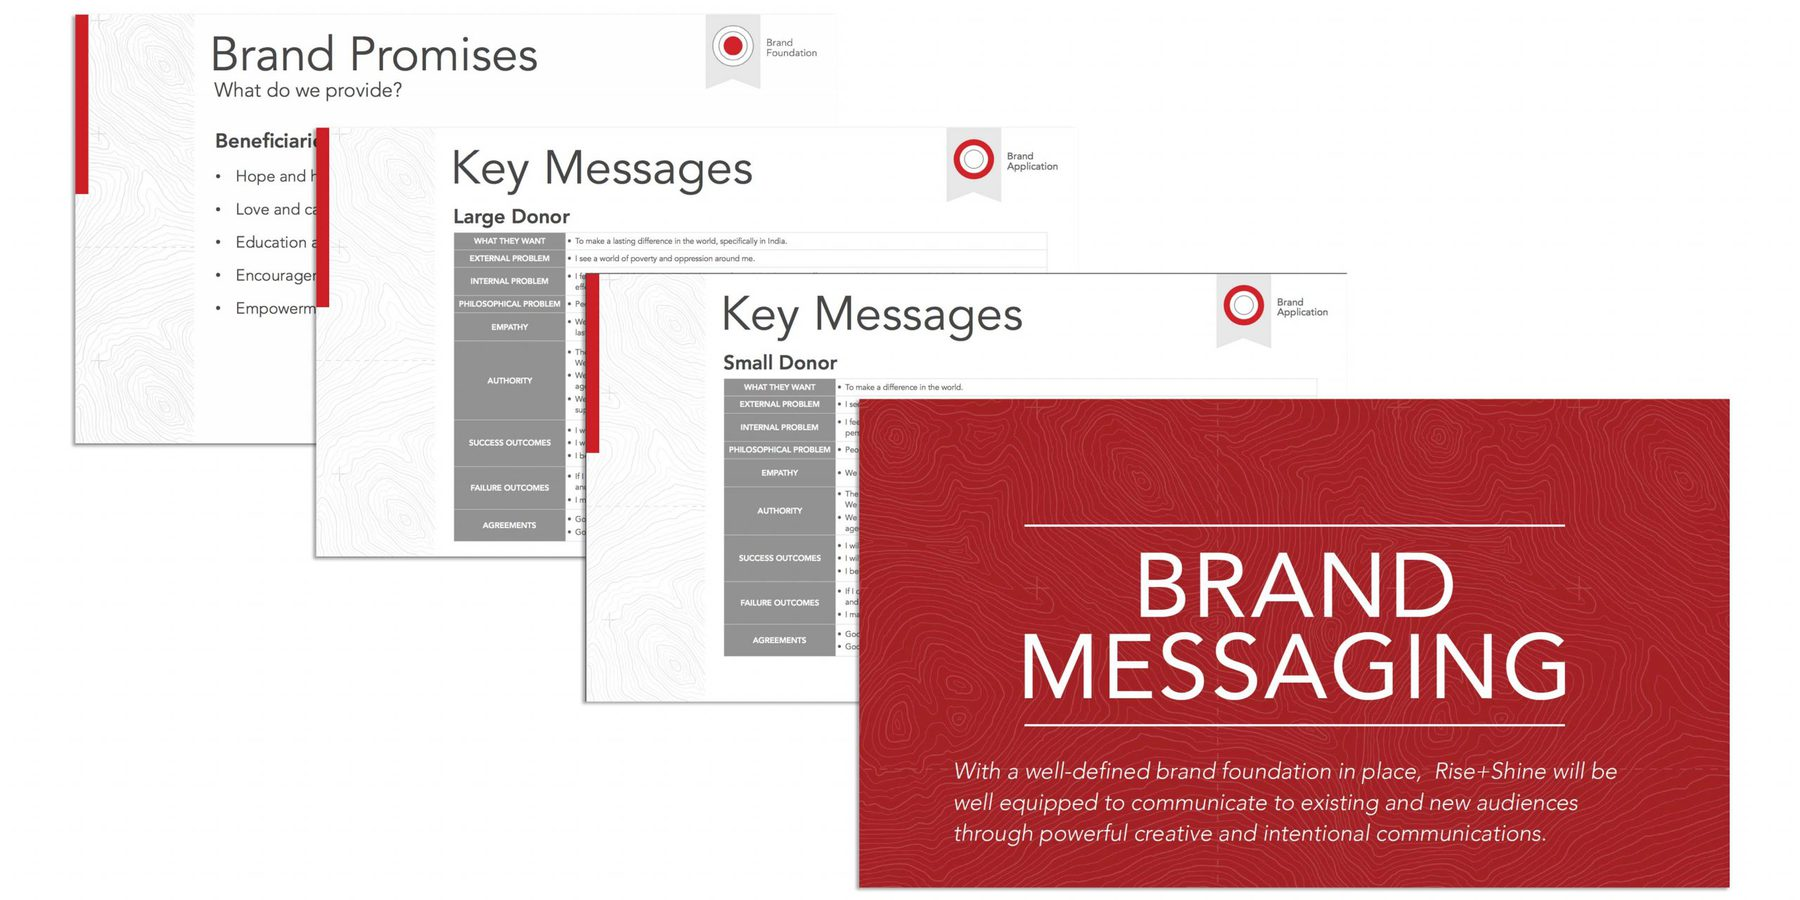 An example of four slides from a Brand Messaging presentation. Shown is the title slide, two Key Messages slides, and the Brand Promises slide.